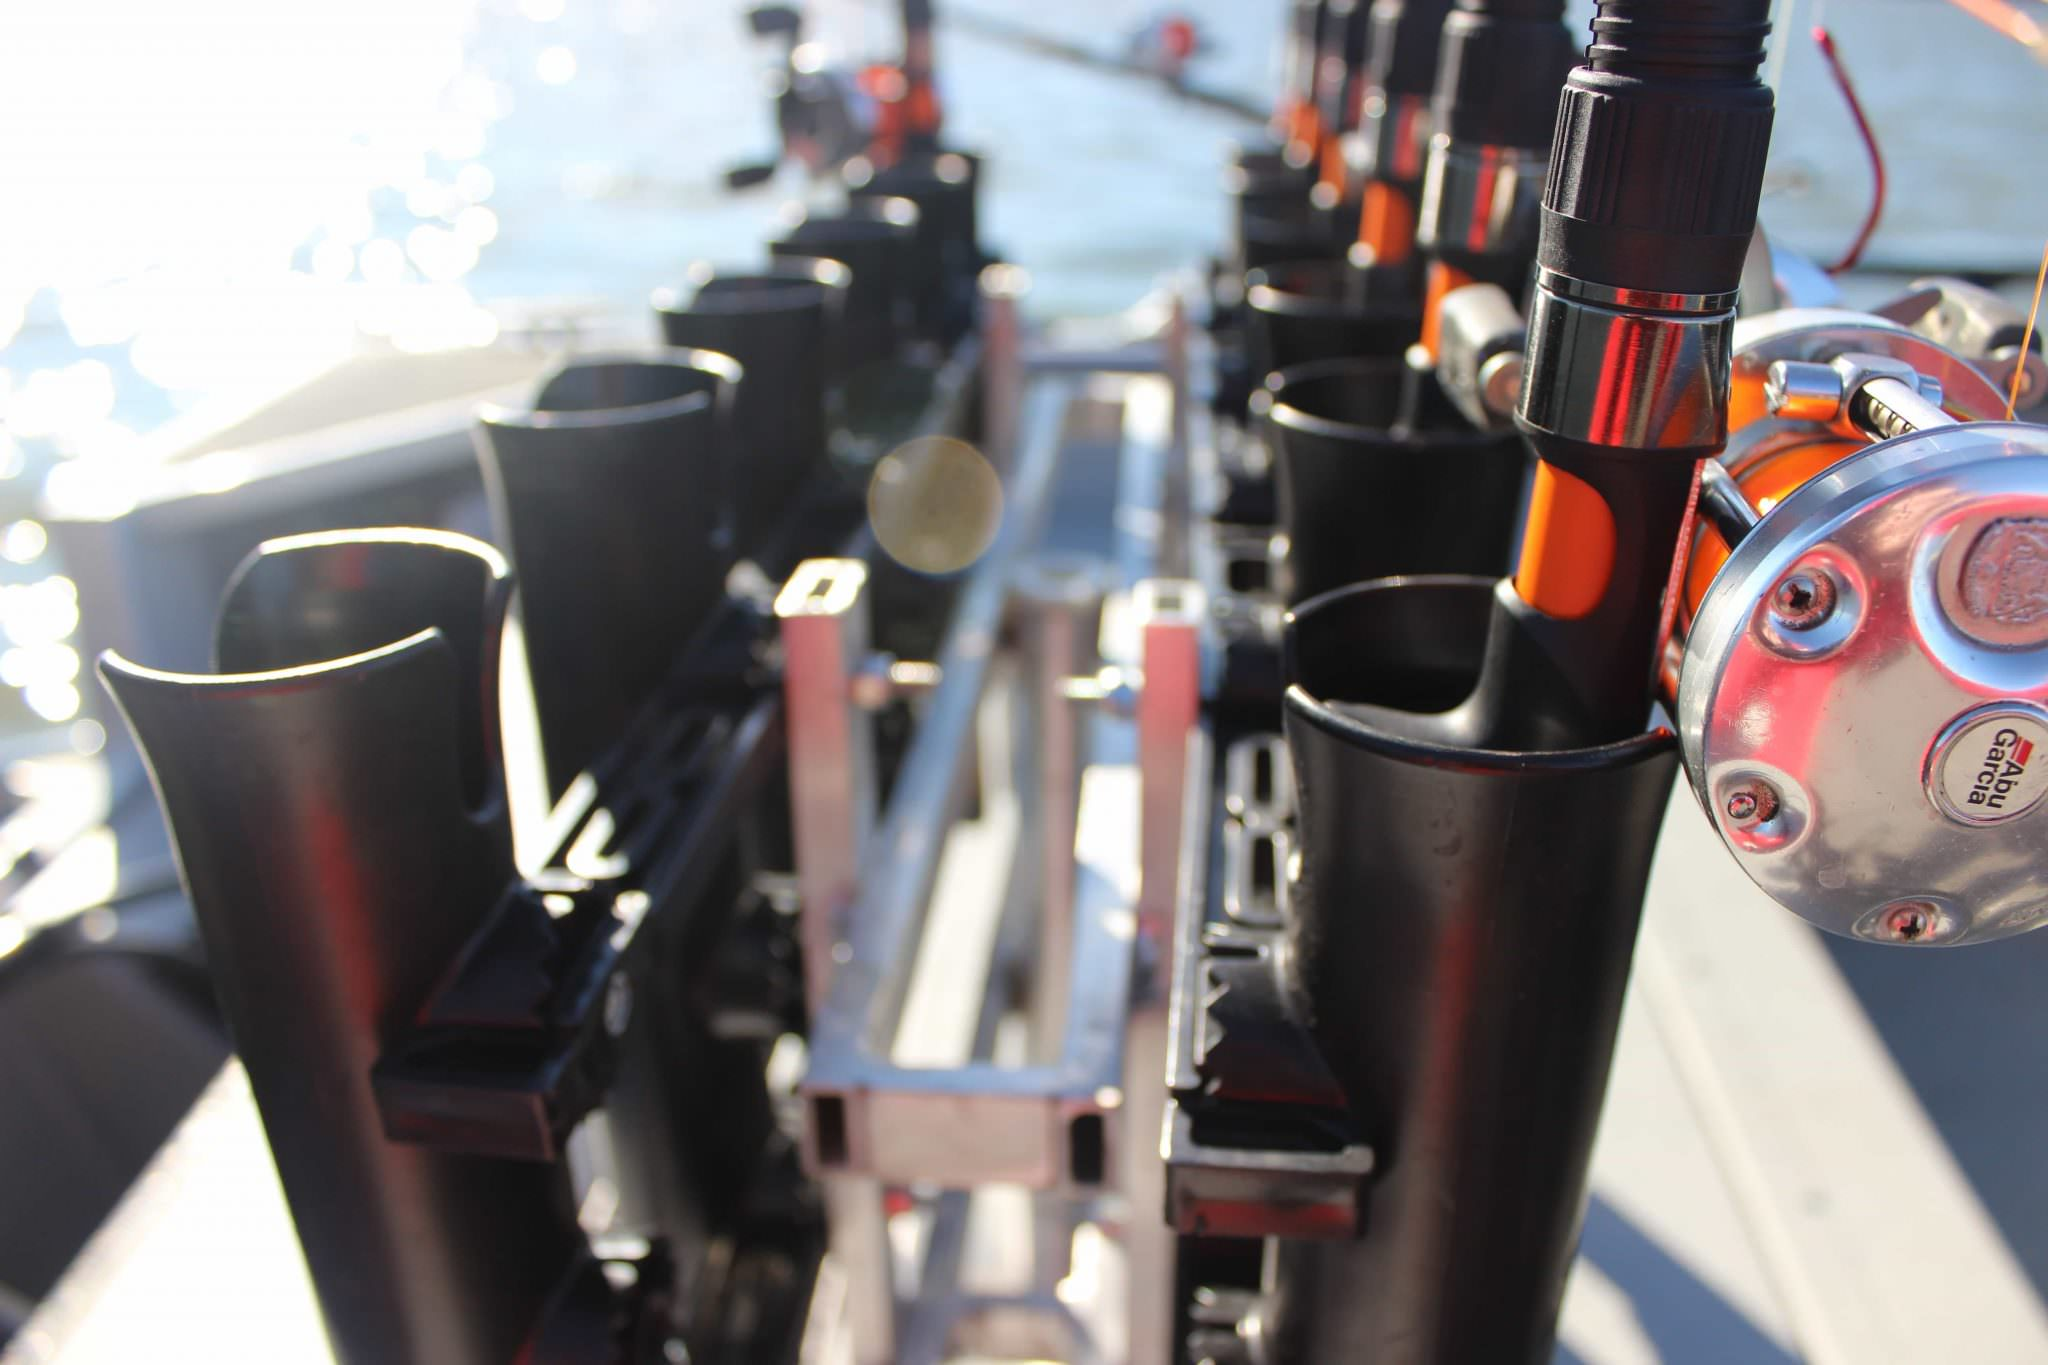 Vertical Fishing Rod Rack For Boats Diy Simple Portable